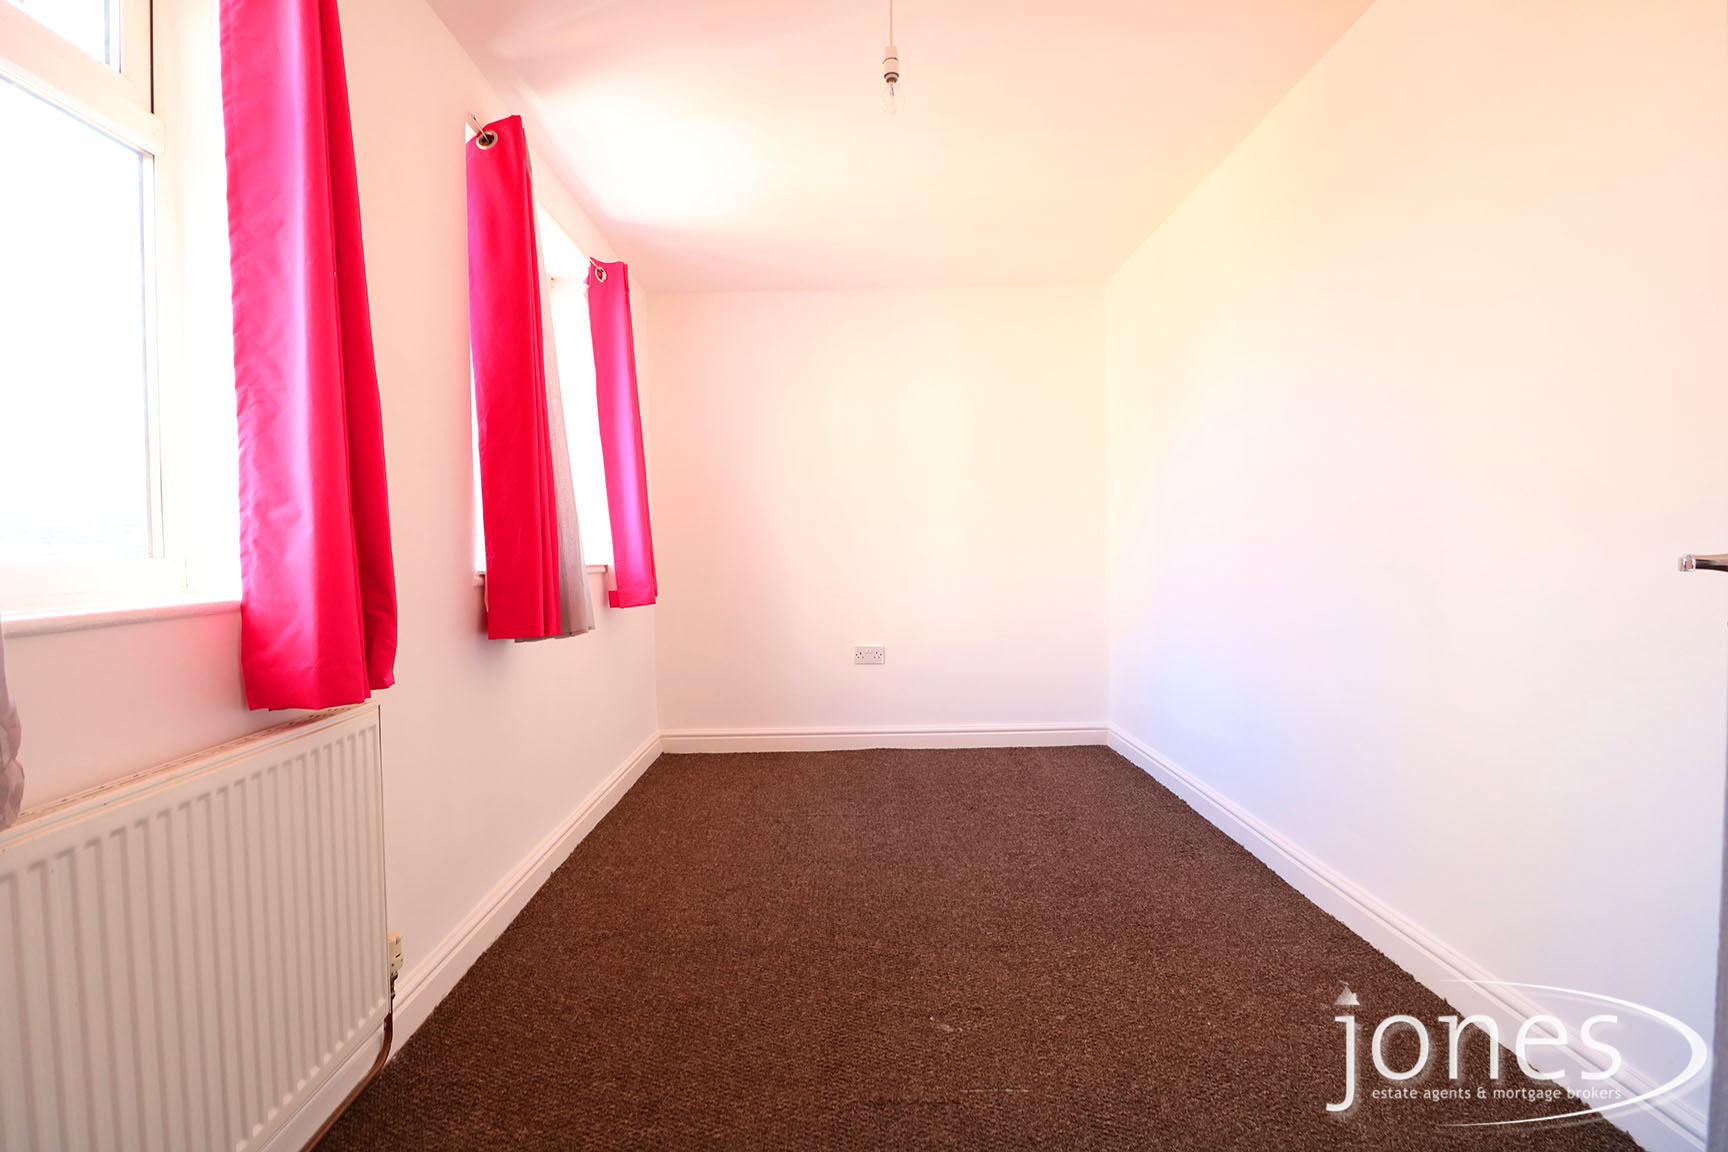 Home for Sale Let - Photo 07 Castlereagh Road,  Stockton on Tees, TS19 0DL